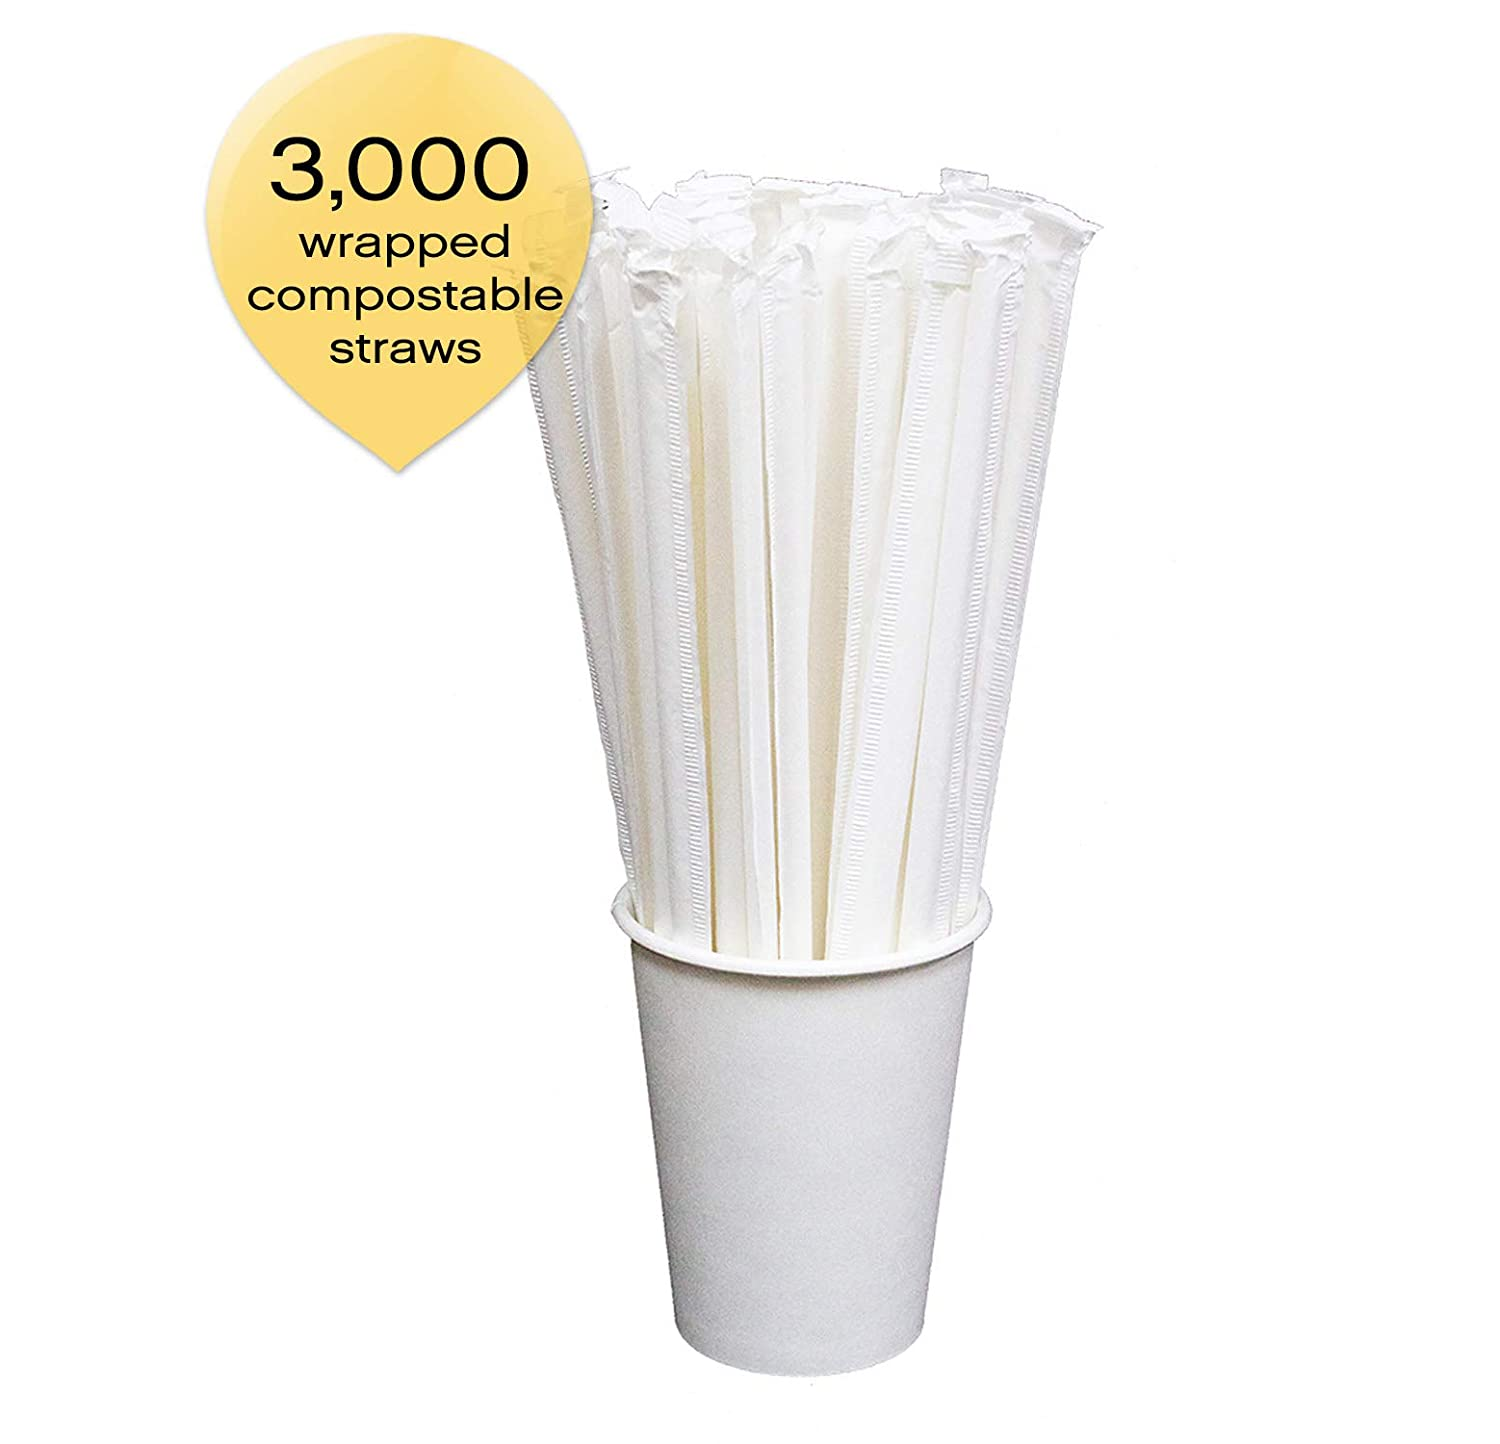 765b2da6b07 Sophistiplate Foodservice Box Of 5000 White-Unwrapped Compostable Paper  Drinking Straws 7.75